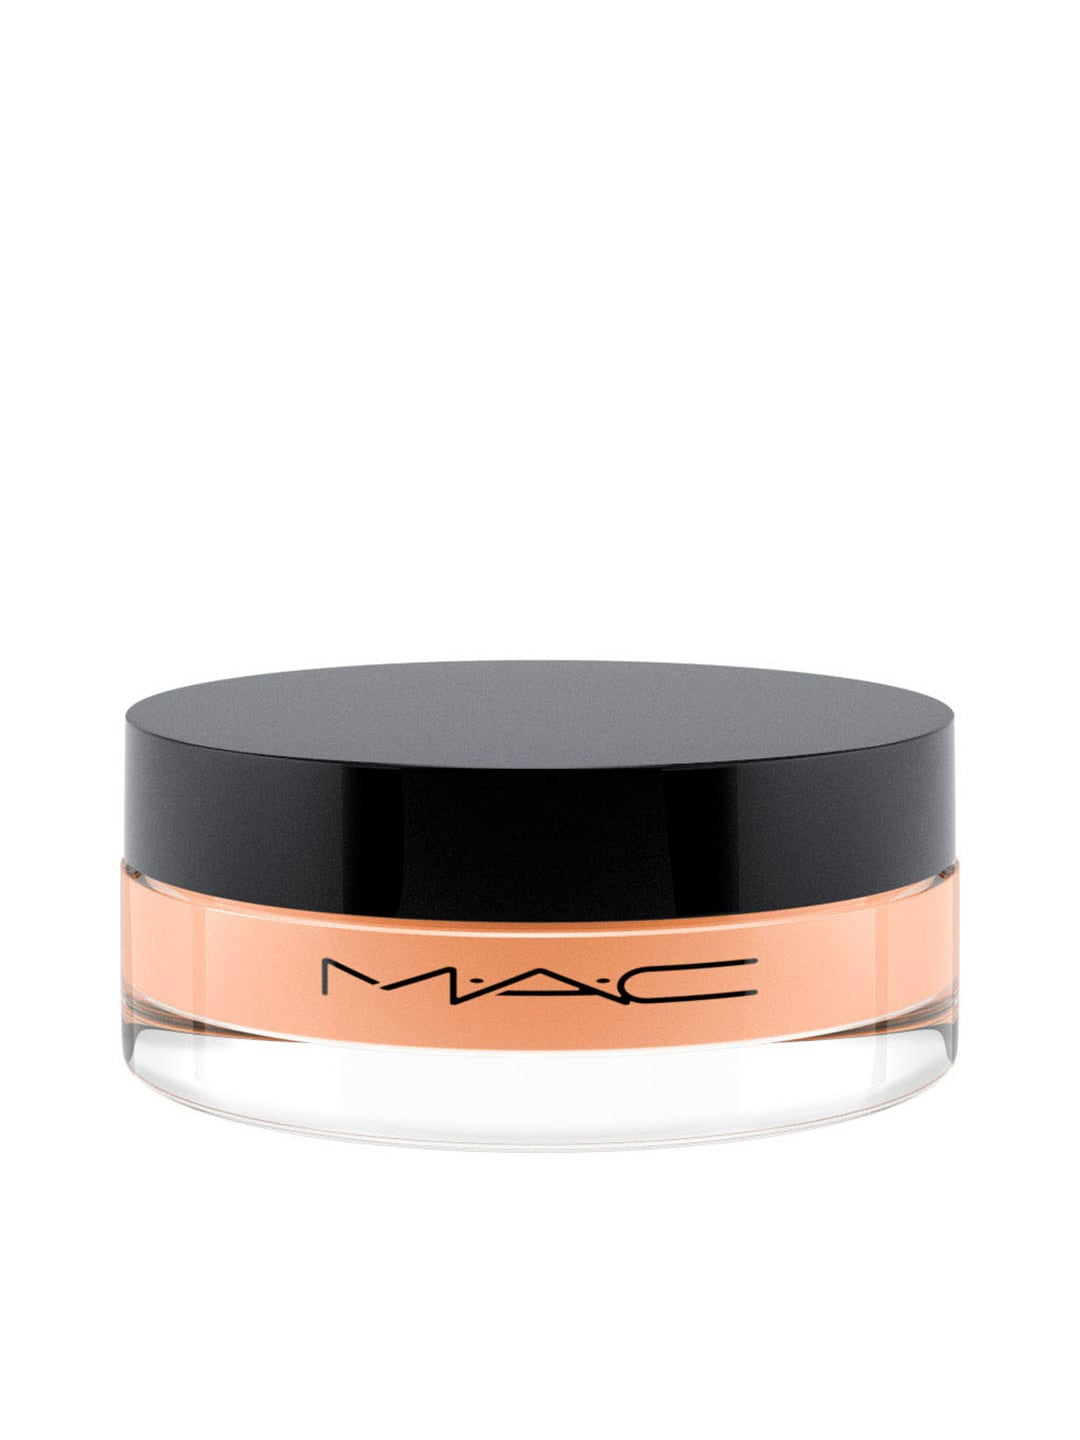 M.A.C Medium Deep Studio Fix Perfecting Powder Compact image